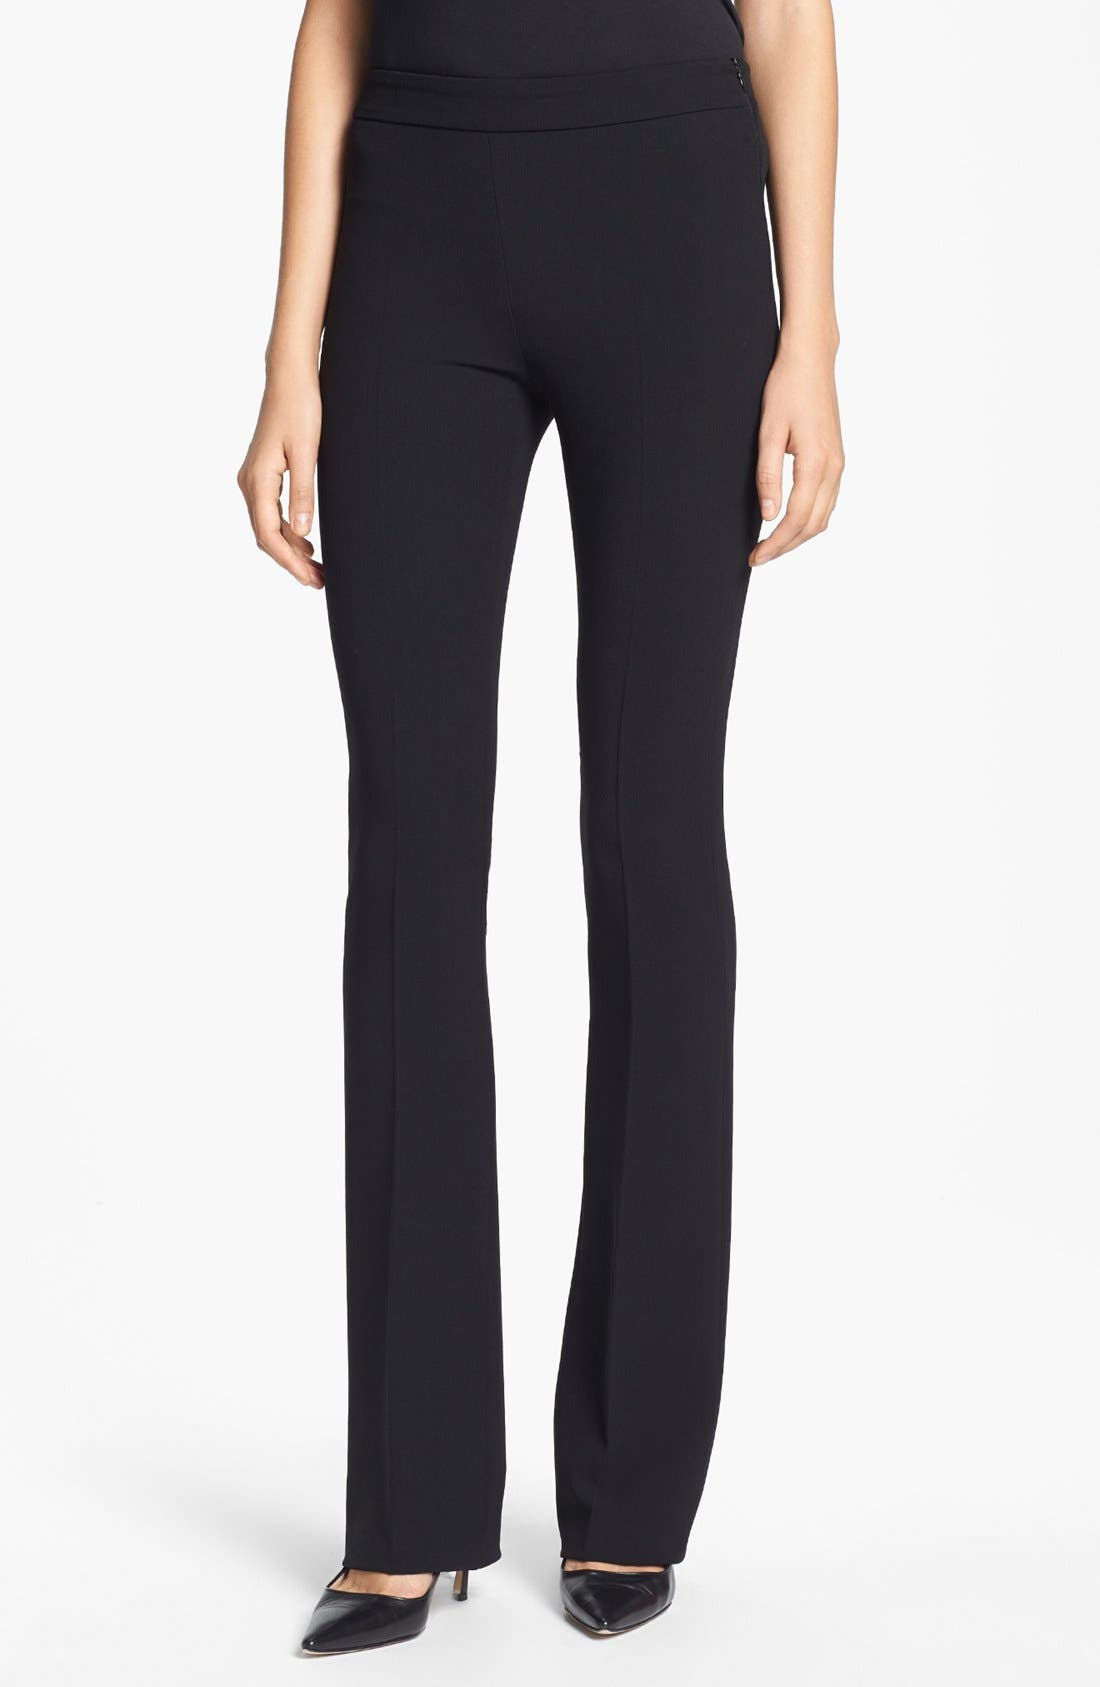 Alternate Image 1 Selected - Max Mara 'Trine' Narrow Stretch Wool Pants